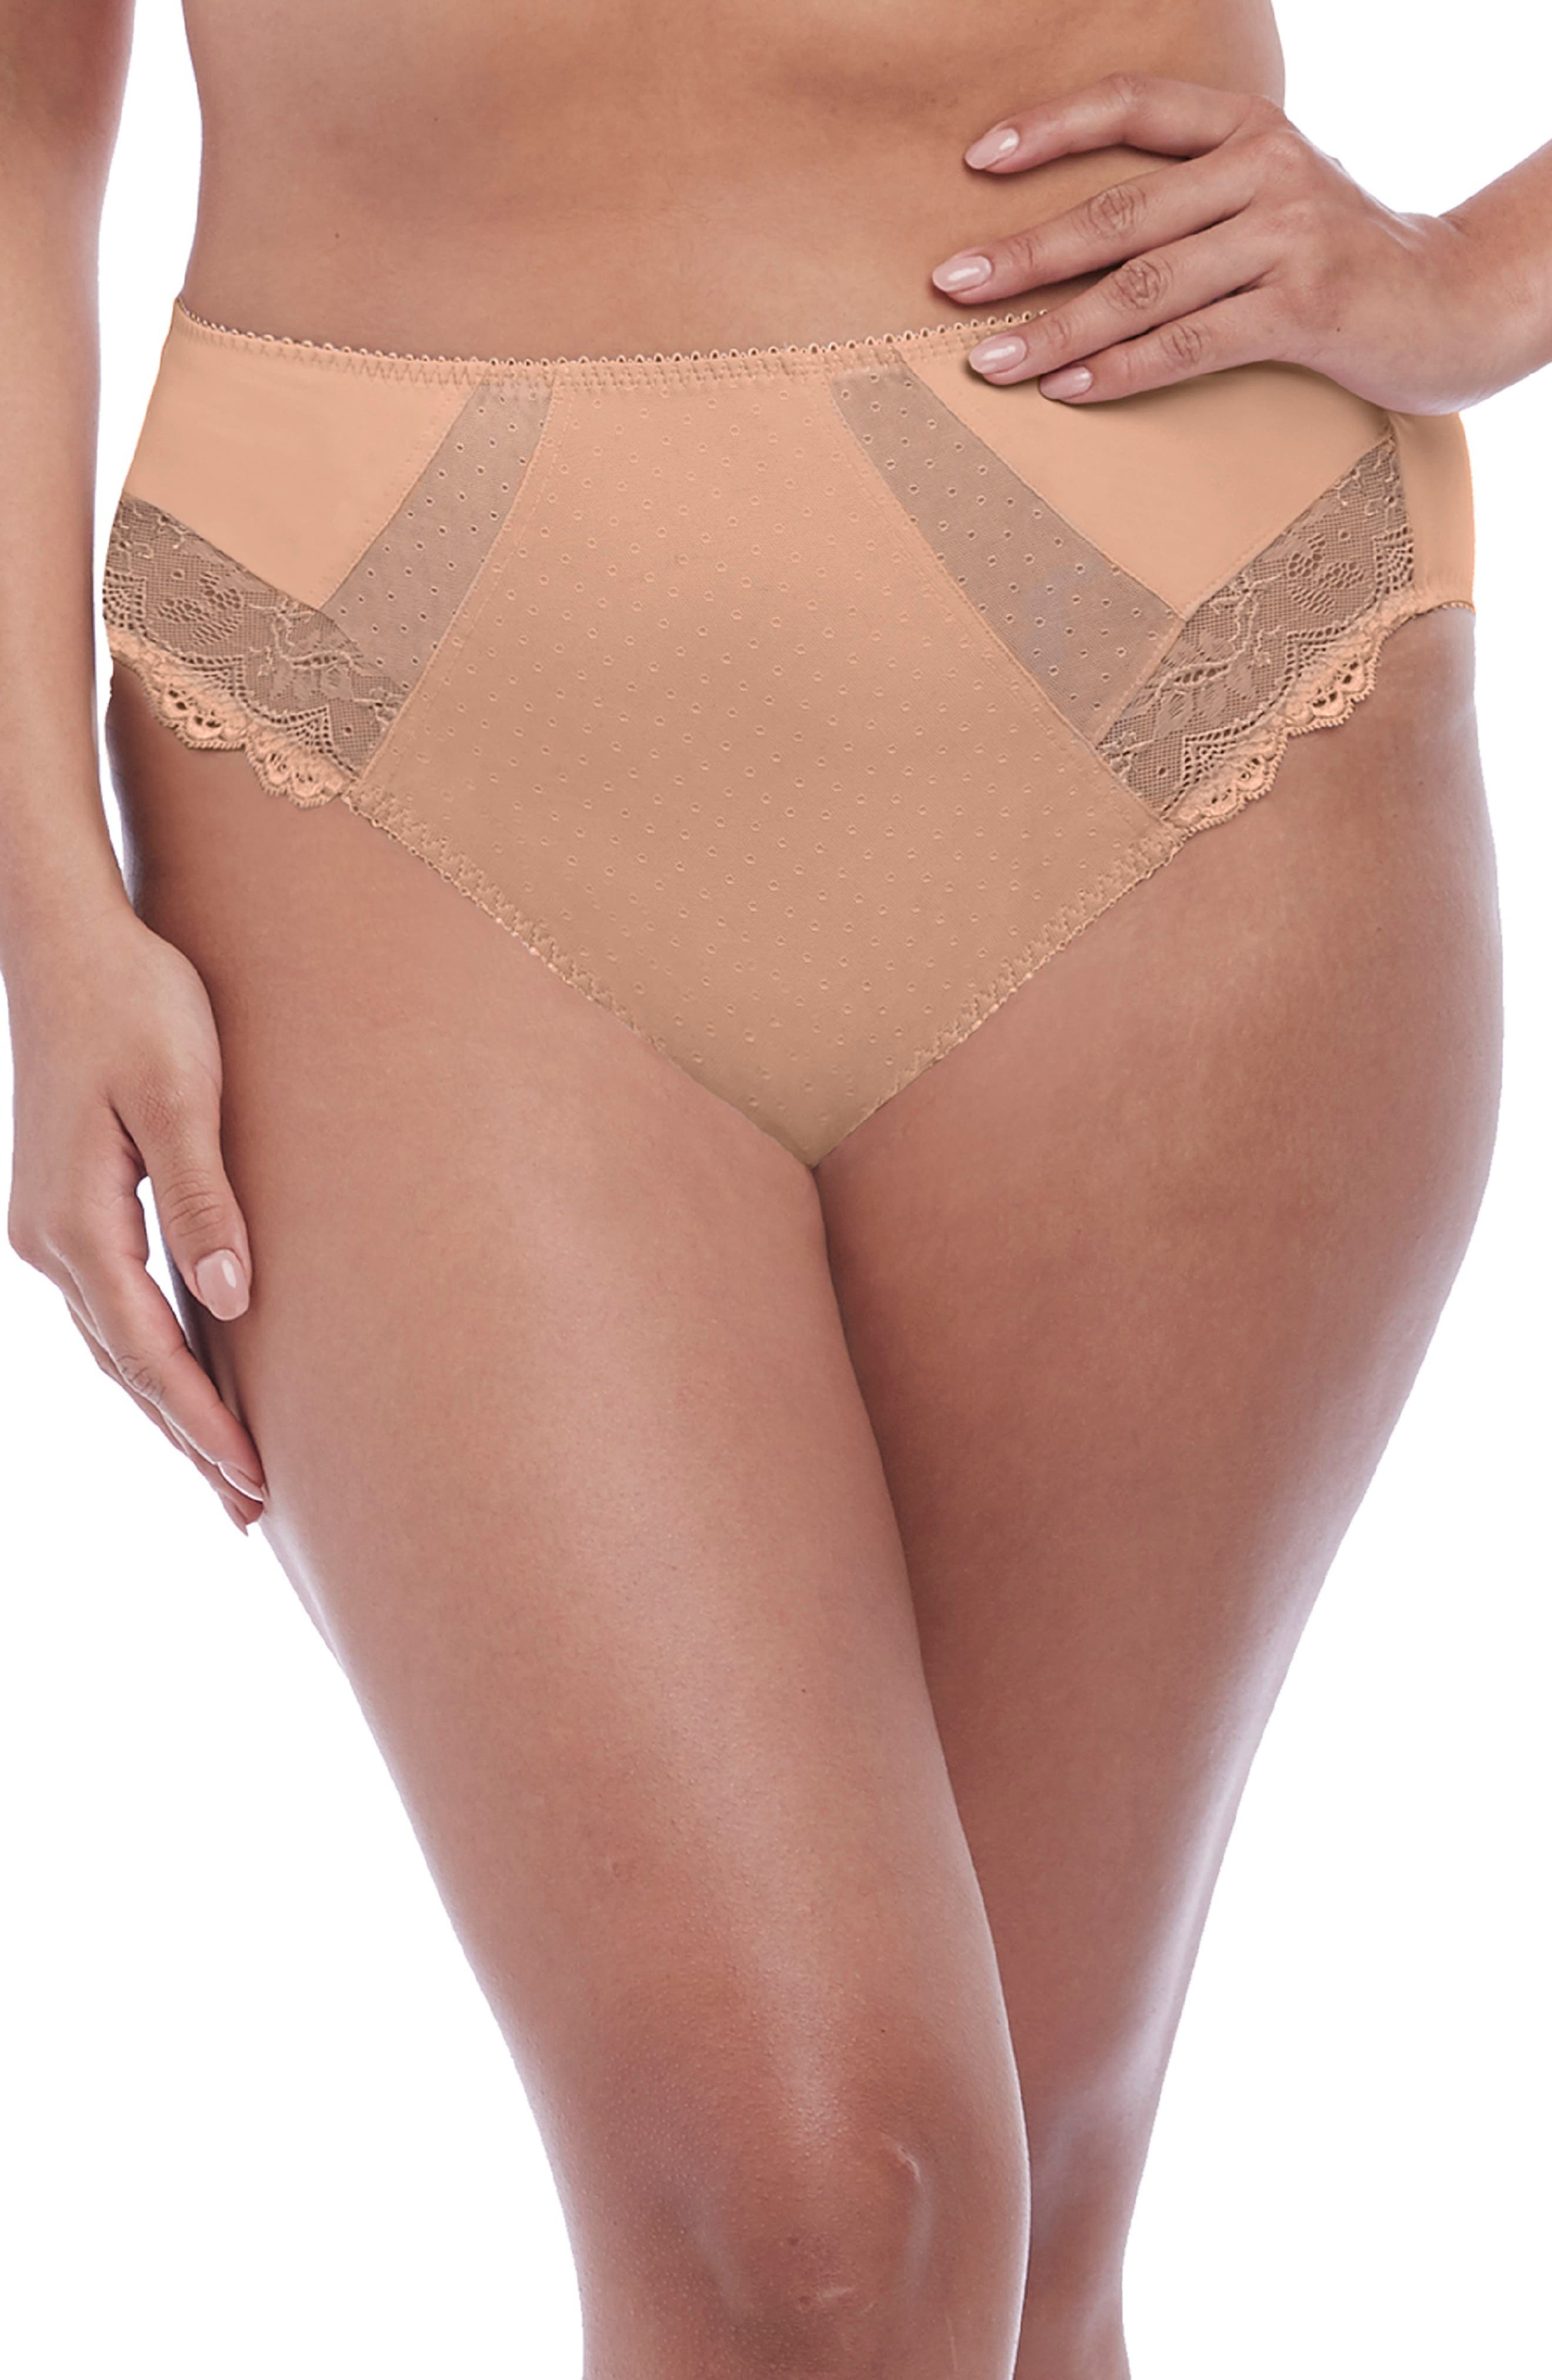 Pretty dots, mesh insets and scalloped lace come together and update the retro influence of these high-rise briefs. Style Name: Elomi Meredith High Leg Briefs (Regular & Plus Size). Style Number: 5996442. Available in stores.